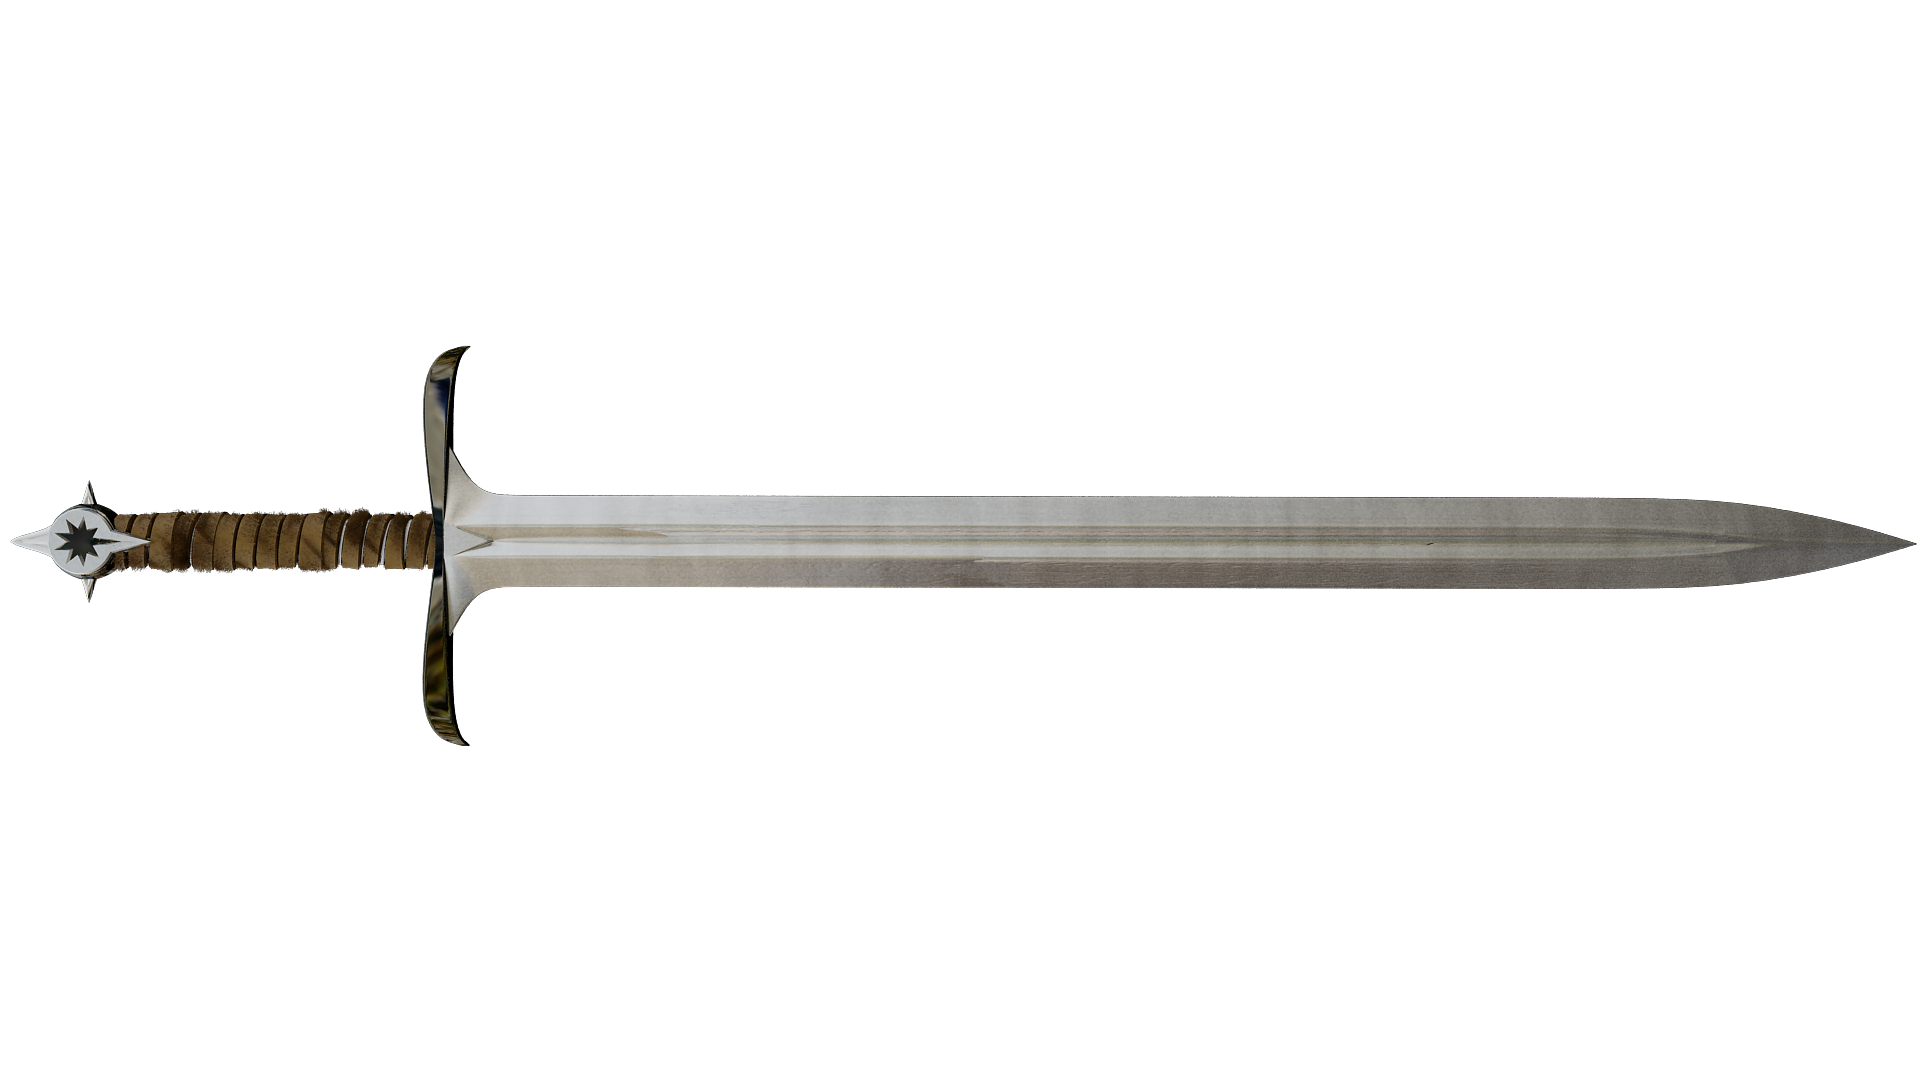 Humble proposition  Sword-hd-png-sword-png-image-1920